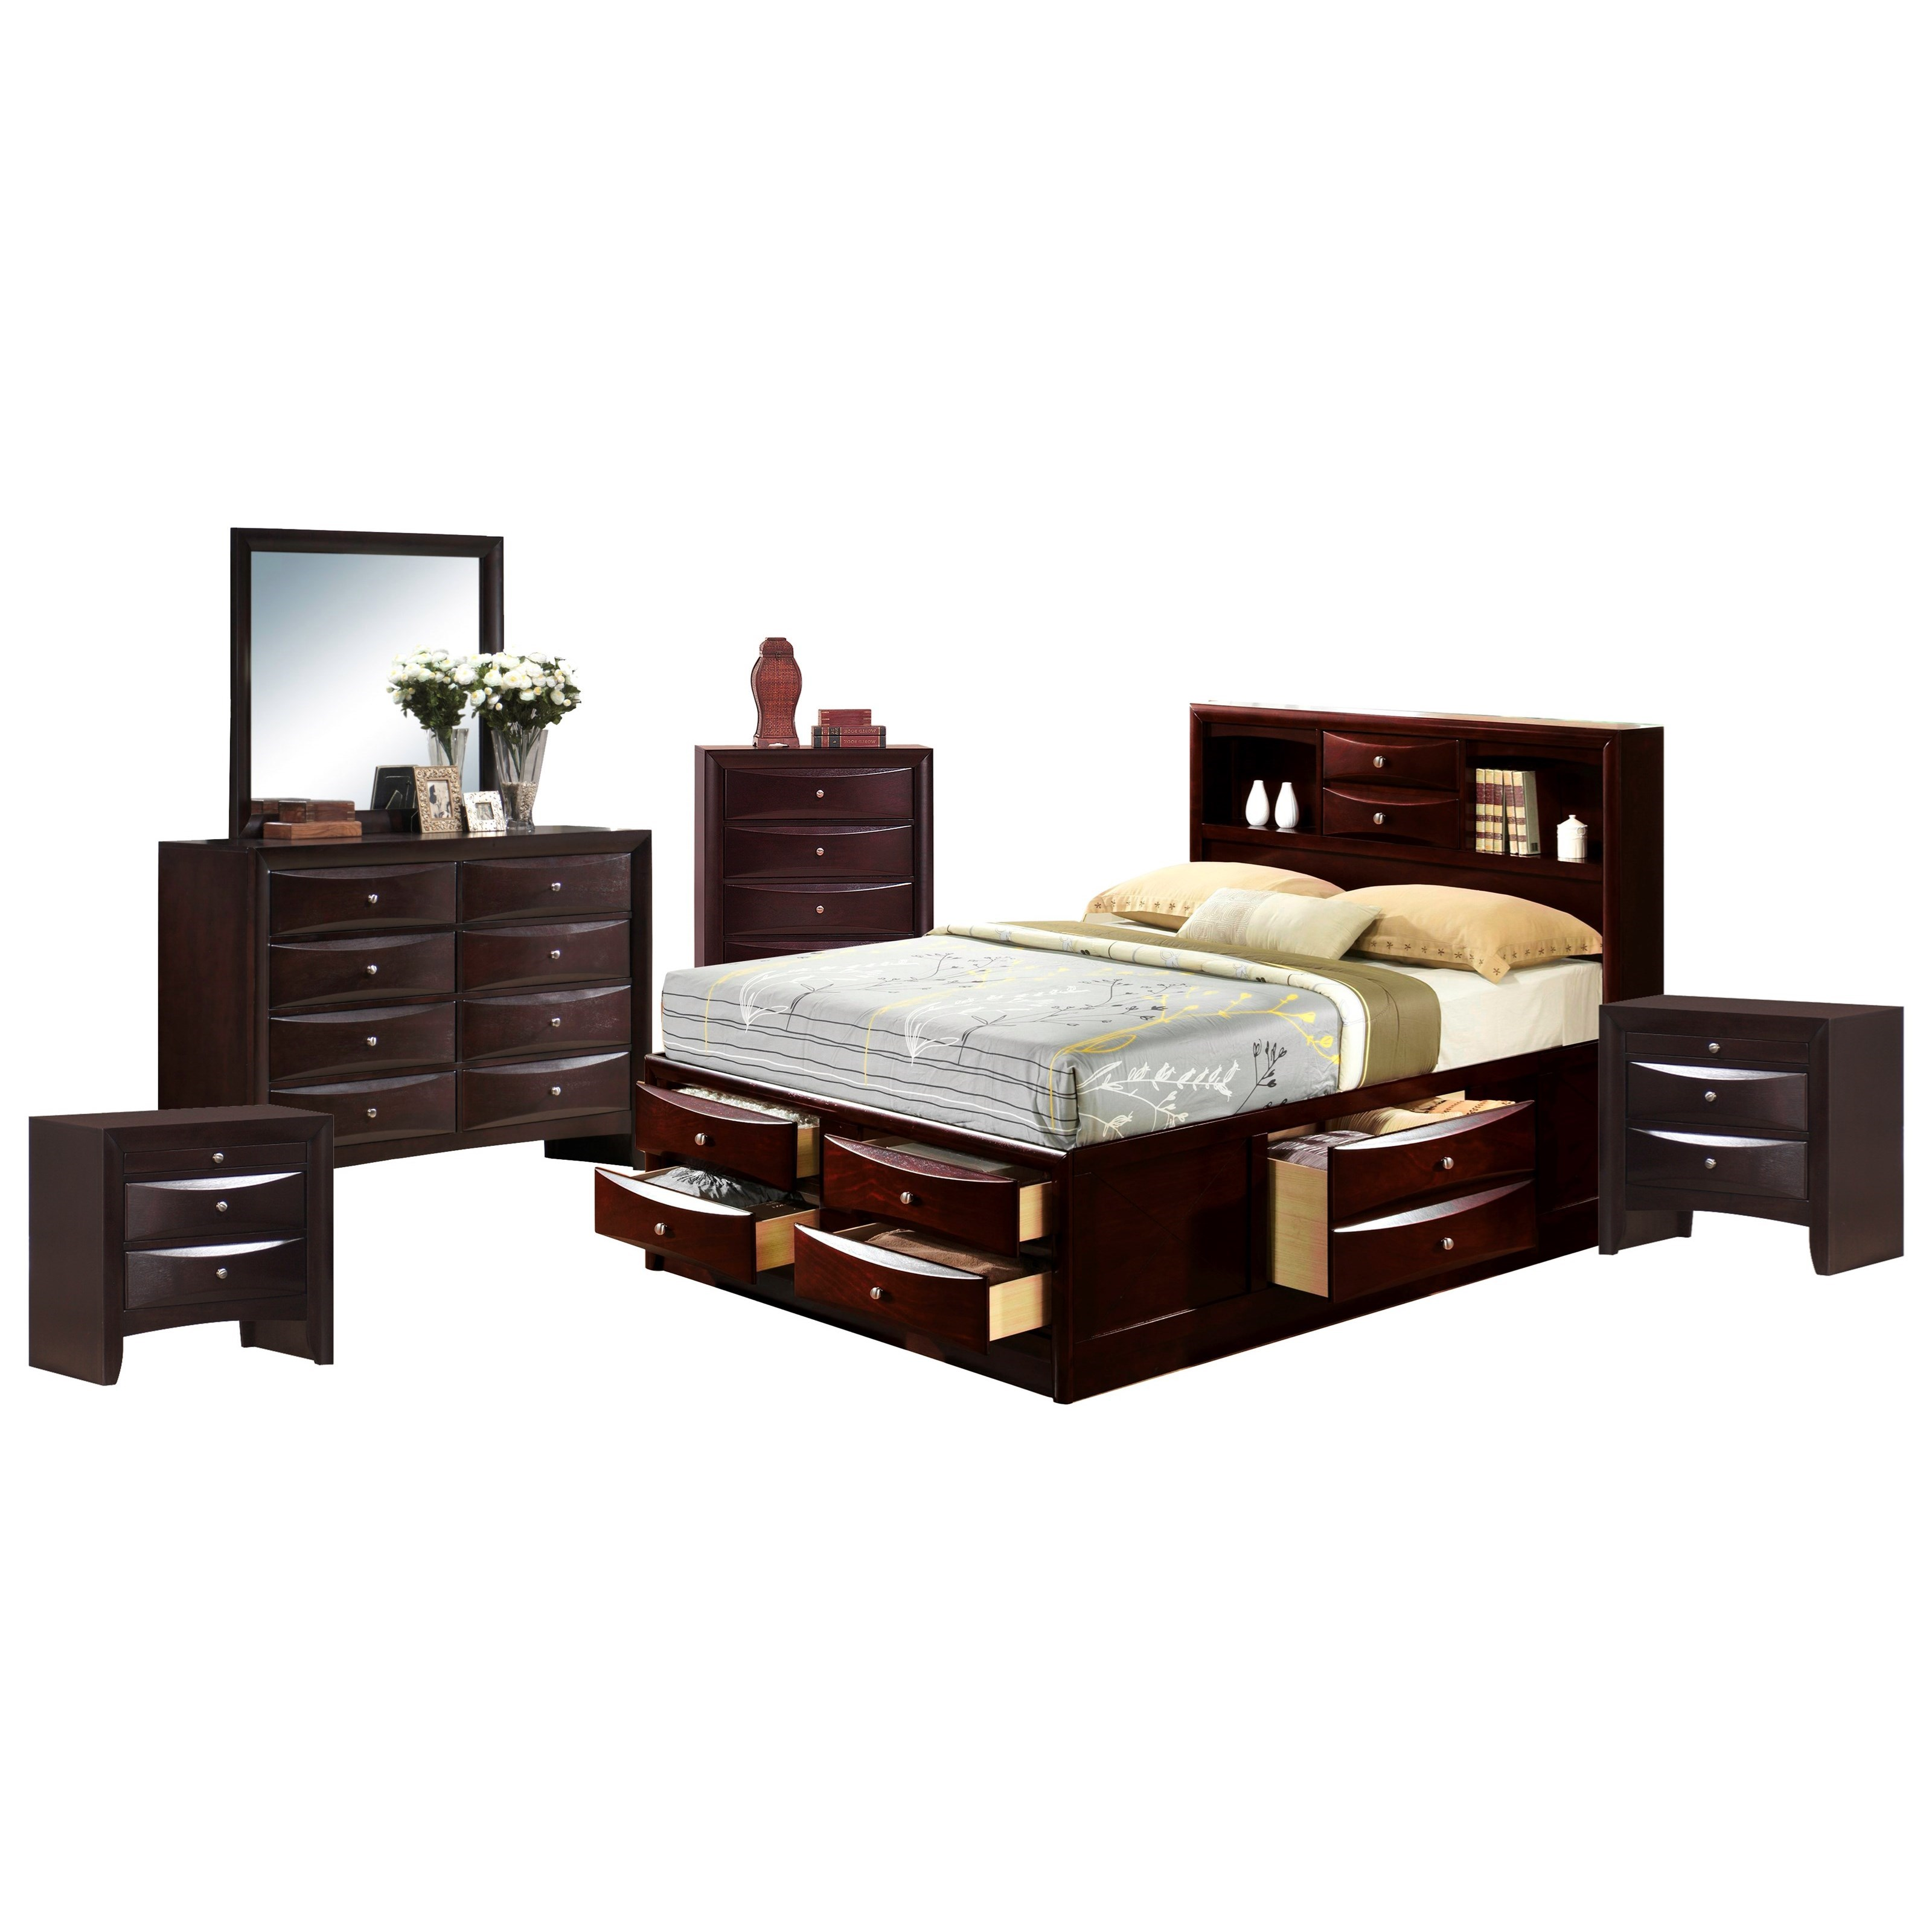 Emily King Bedroom Group by Elements International at Powell's Furniture and Mattress